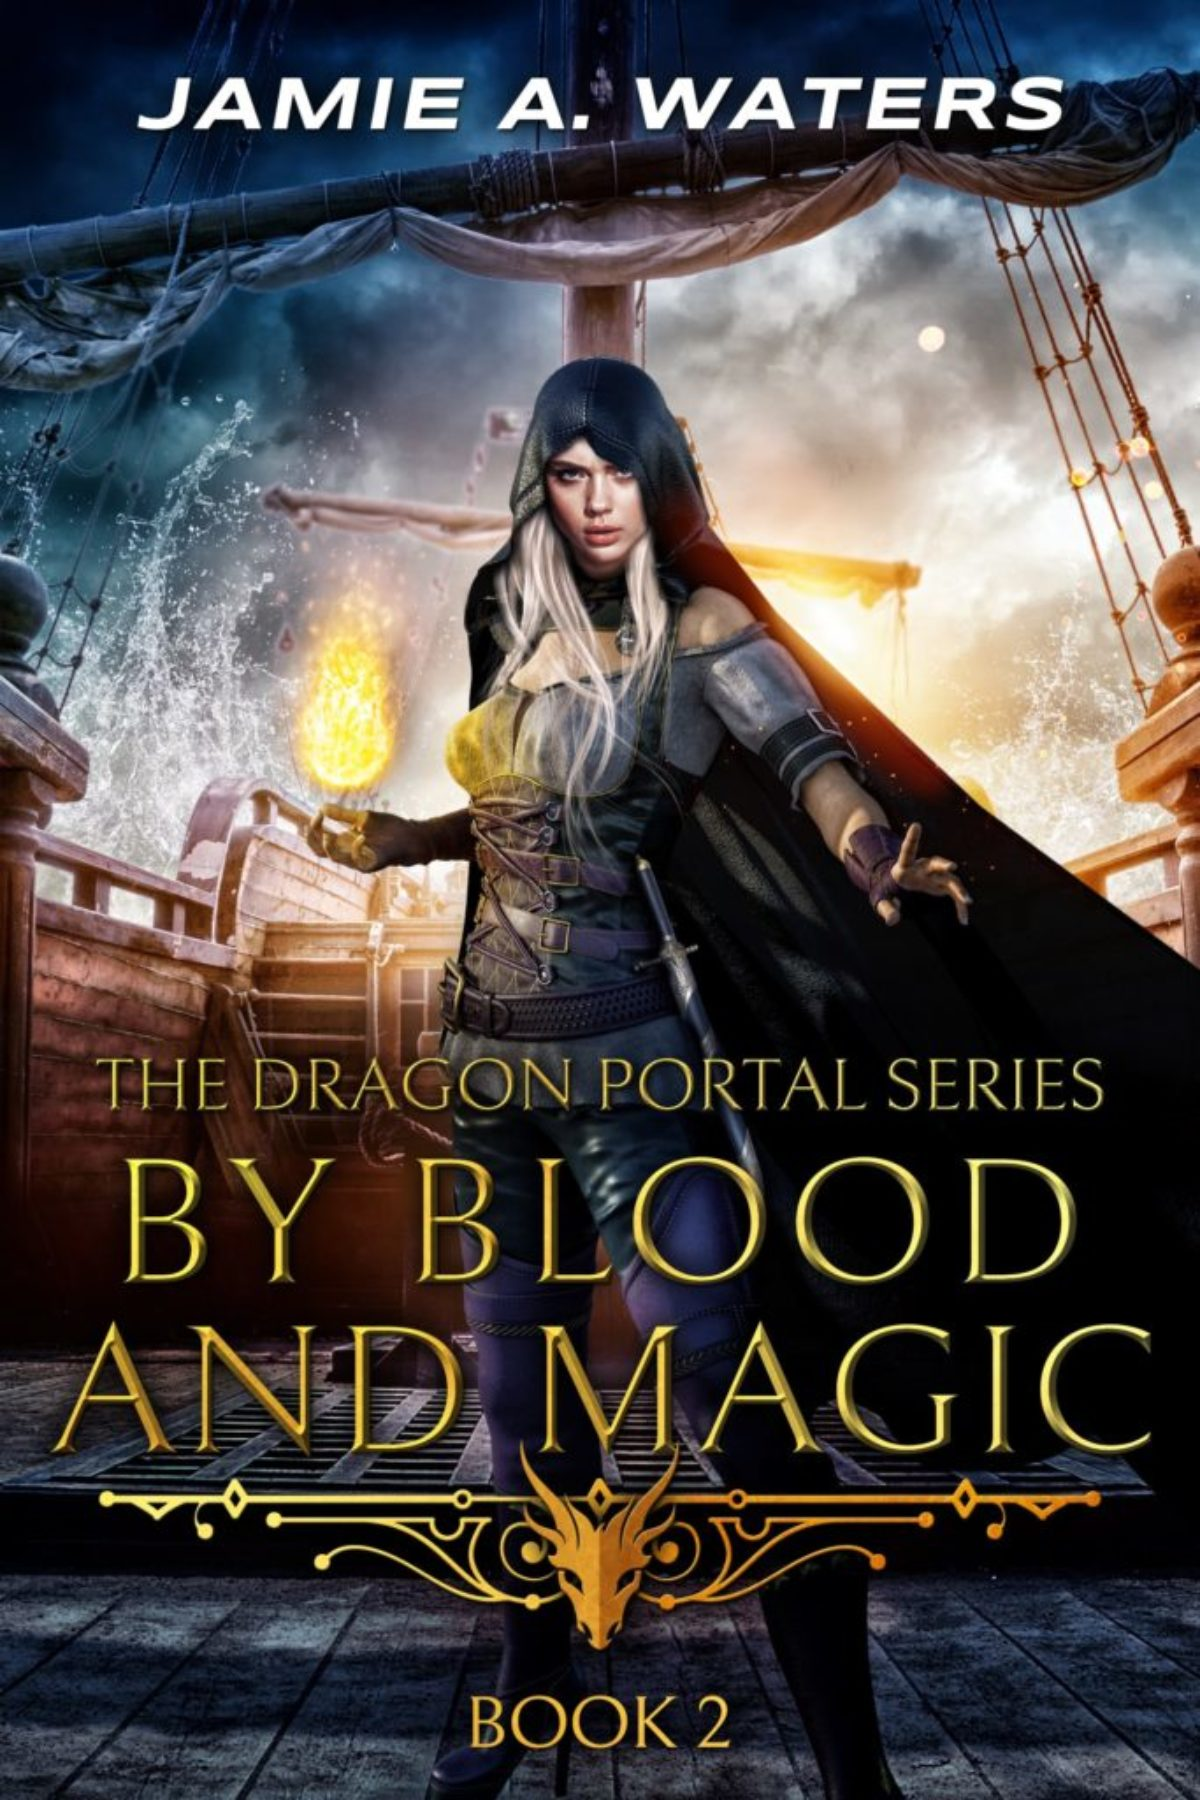 By Blood and Magic